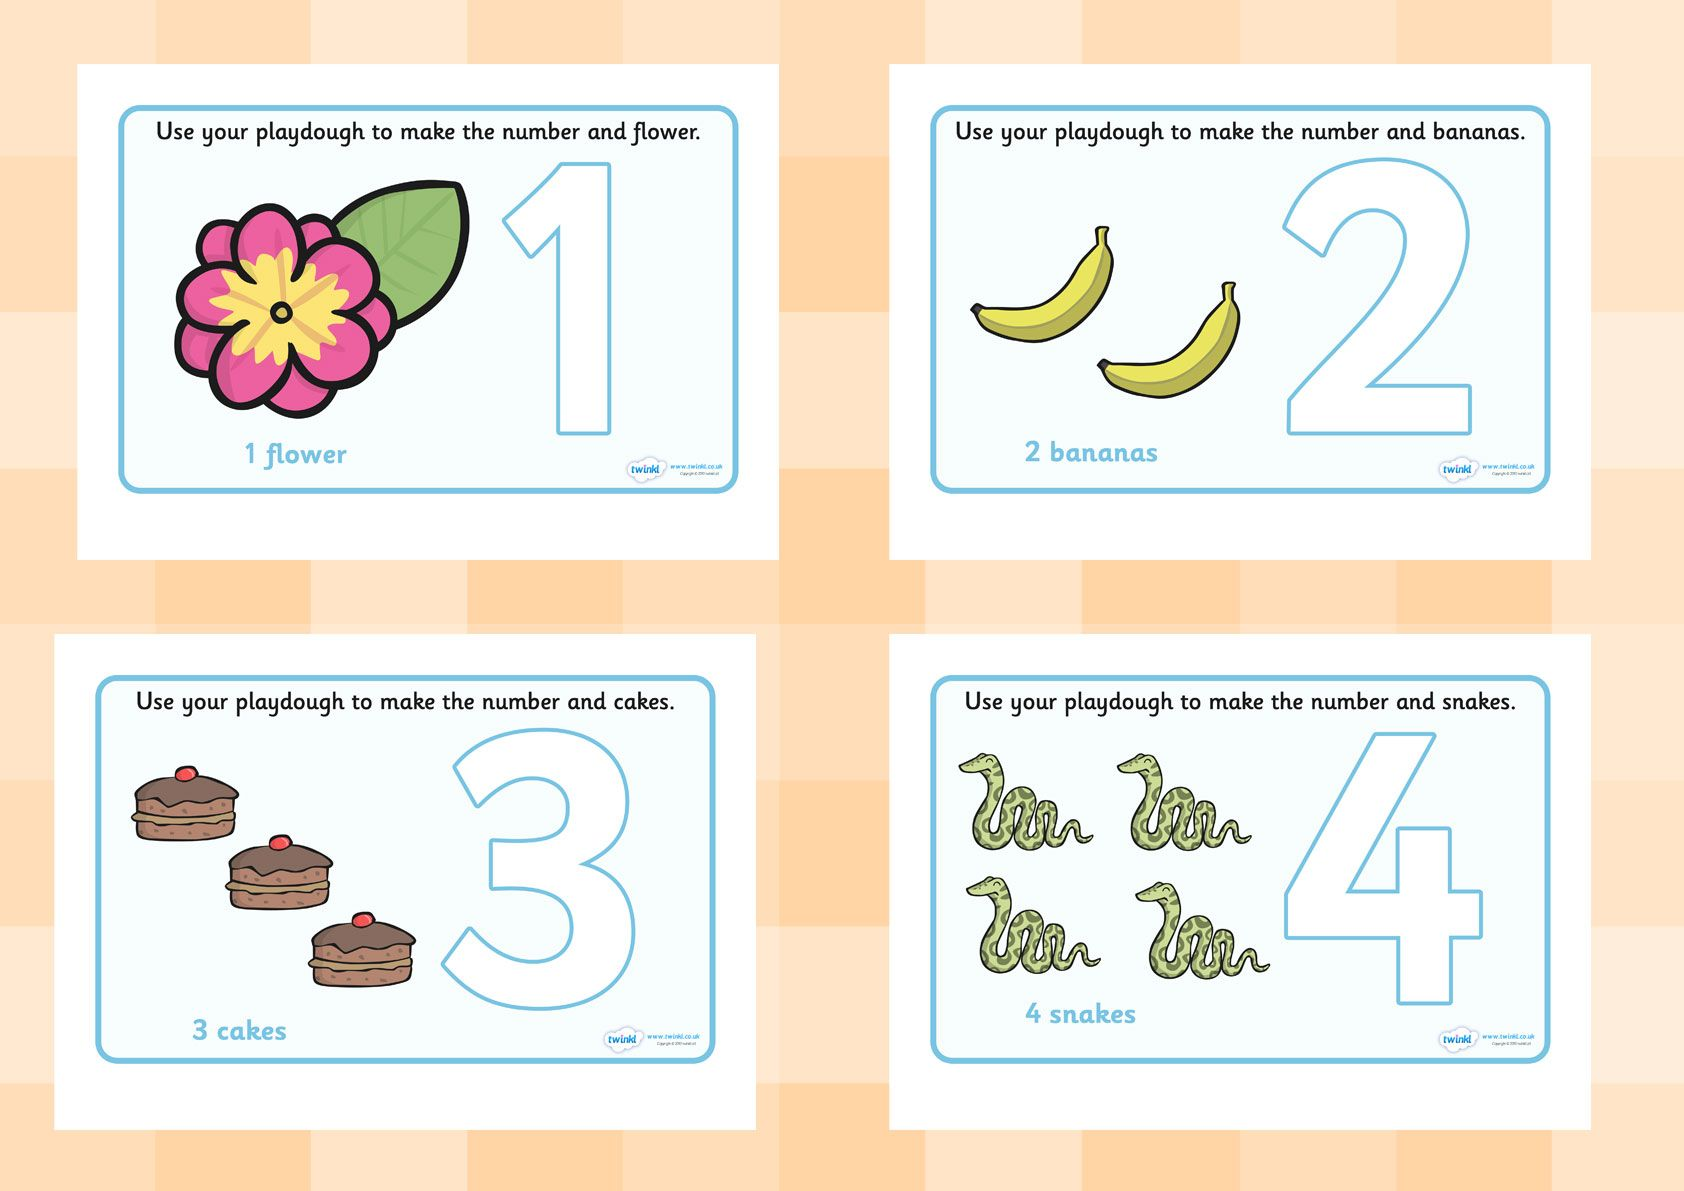 Pin On Ks1 Maths Resources Ideas And Inspiration Twinkl adding digit numbers with